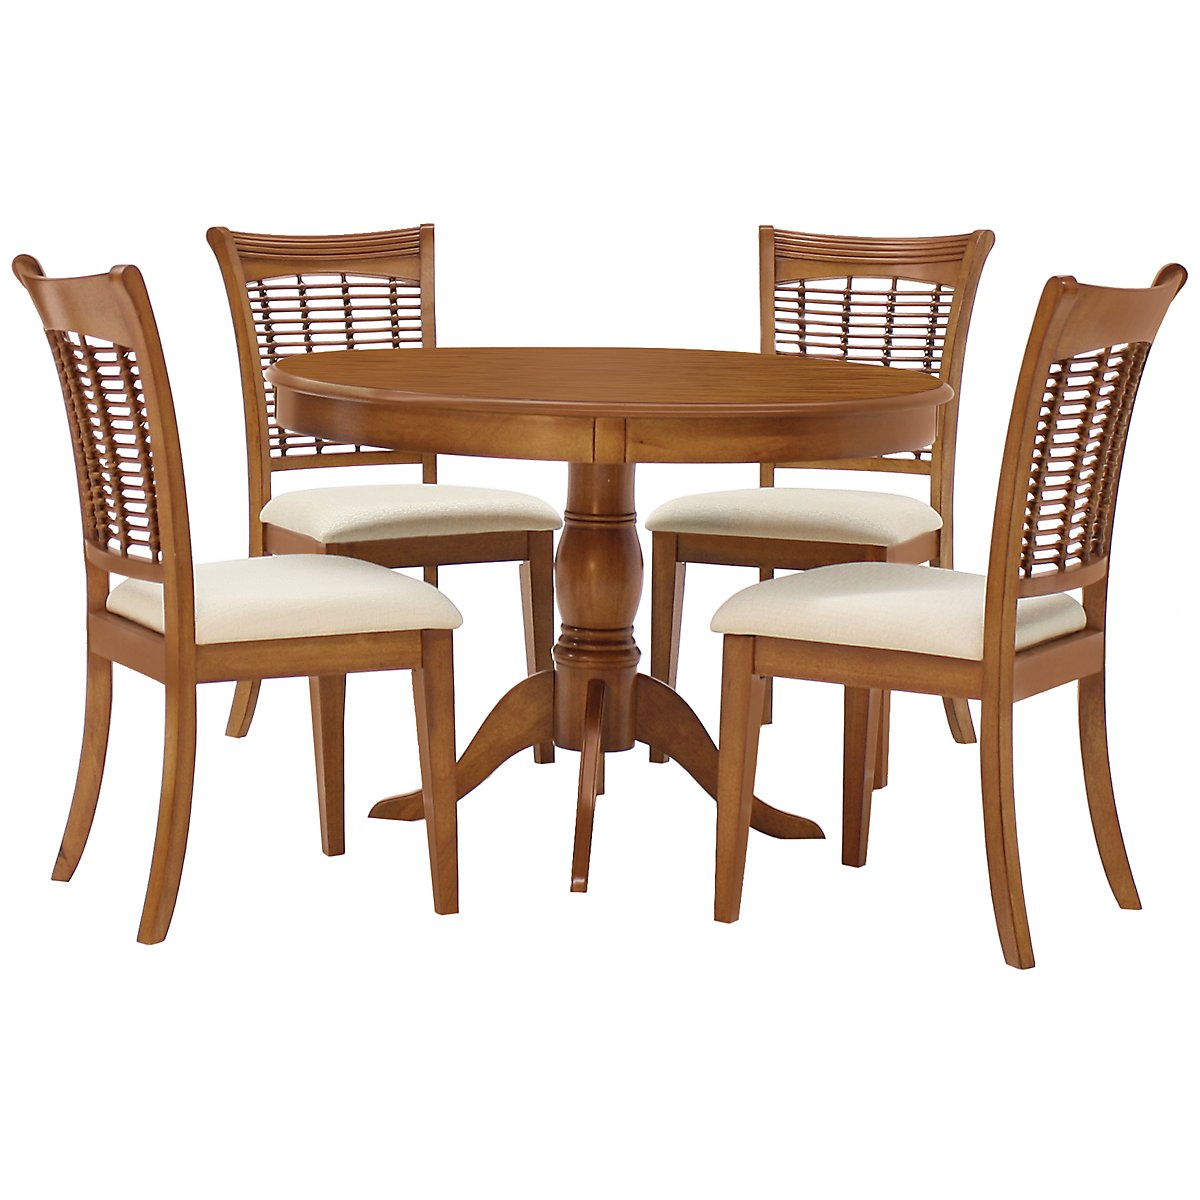 Bayberry mid tone round table 4 chairs for Table and chairs